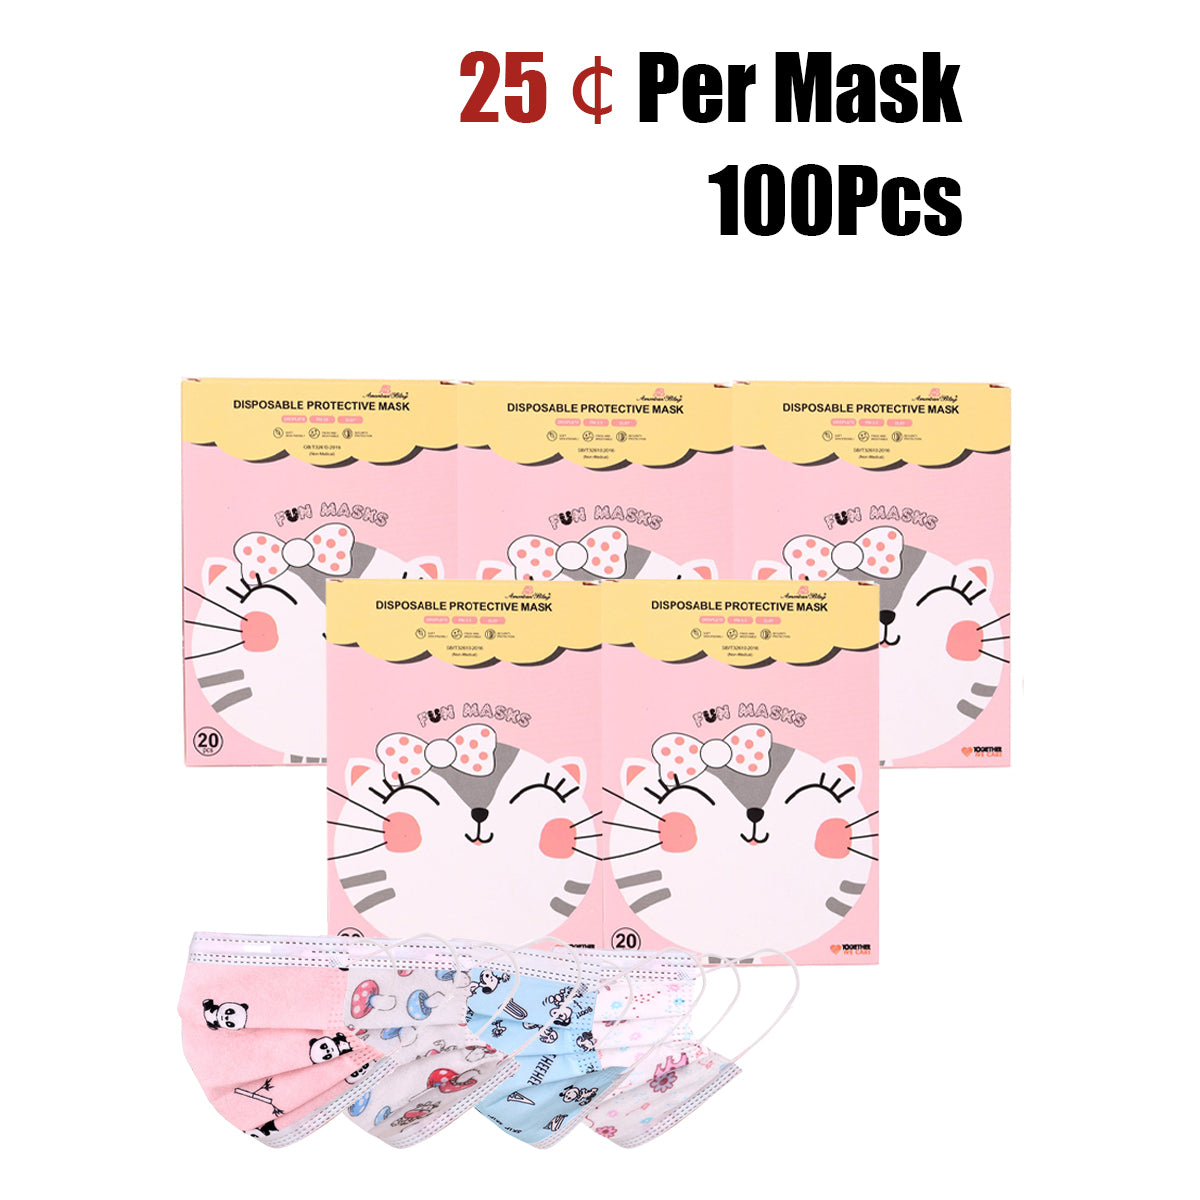 100Pcs American Bling Kids 3 Ply Disposable Assorted Cartoon Print Face Mask  (20Pcs/Box)